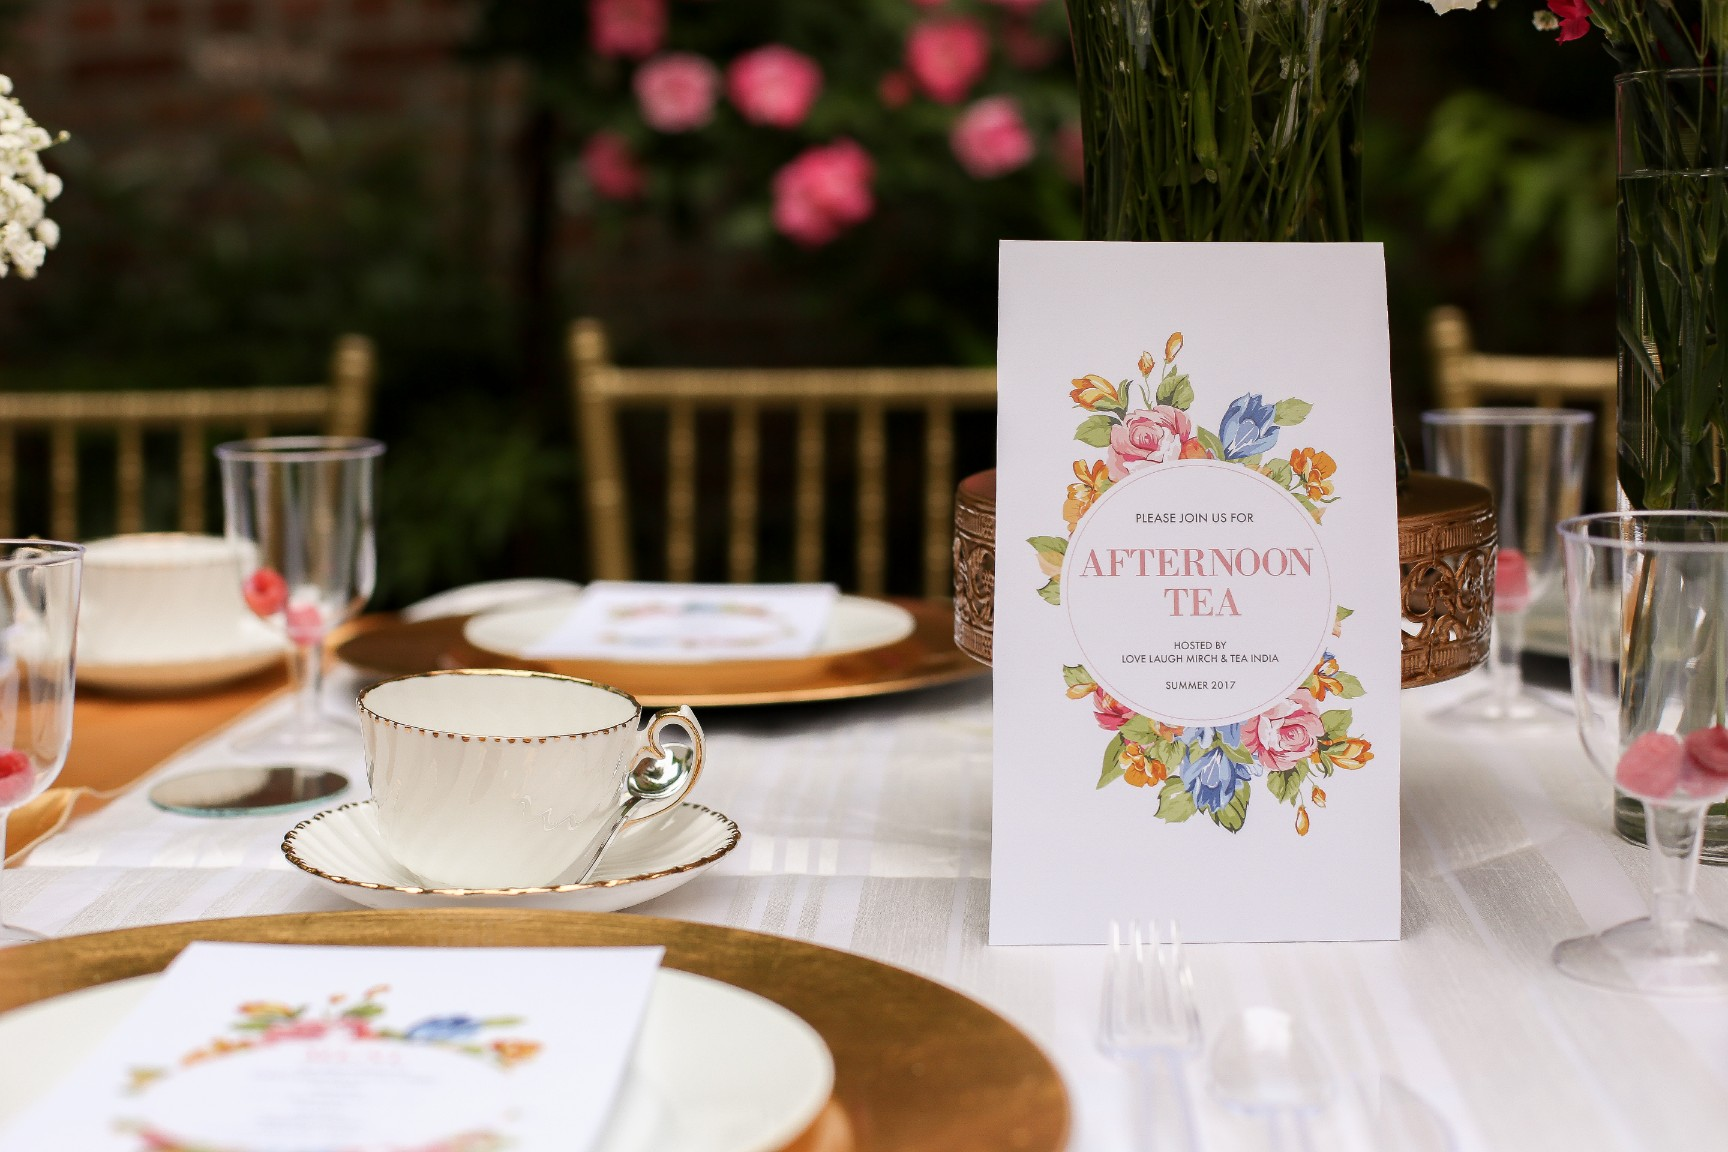 Indian Afternoon Tea | Invite + Table Setting & Indian Afternoon Tea | Invite + Table Setting | Love Laugh Mirch